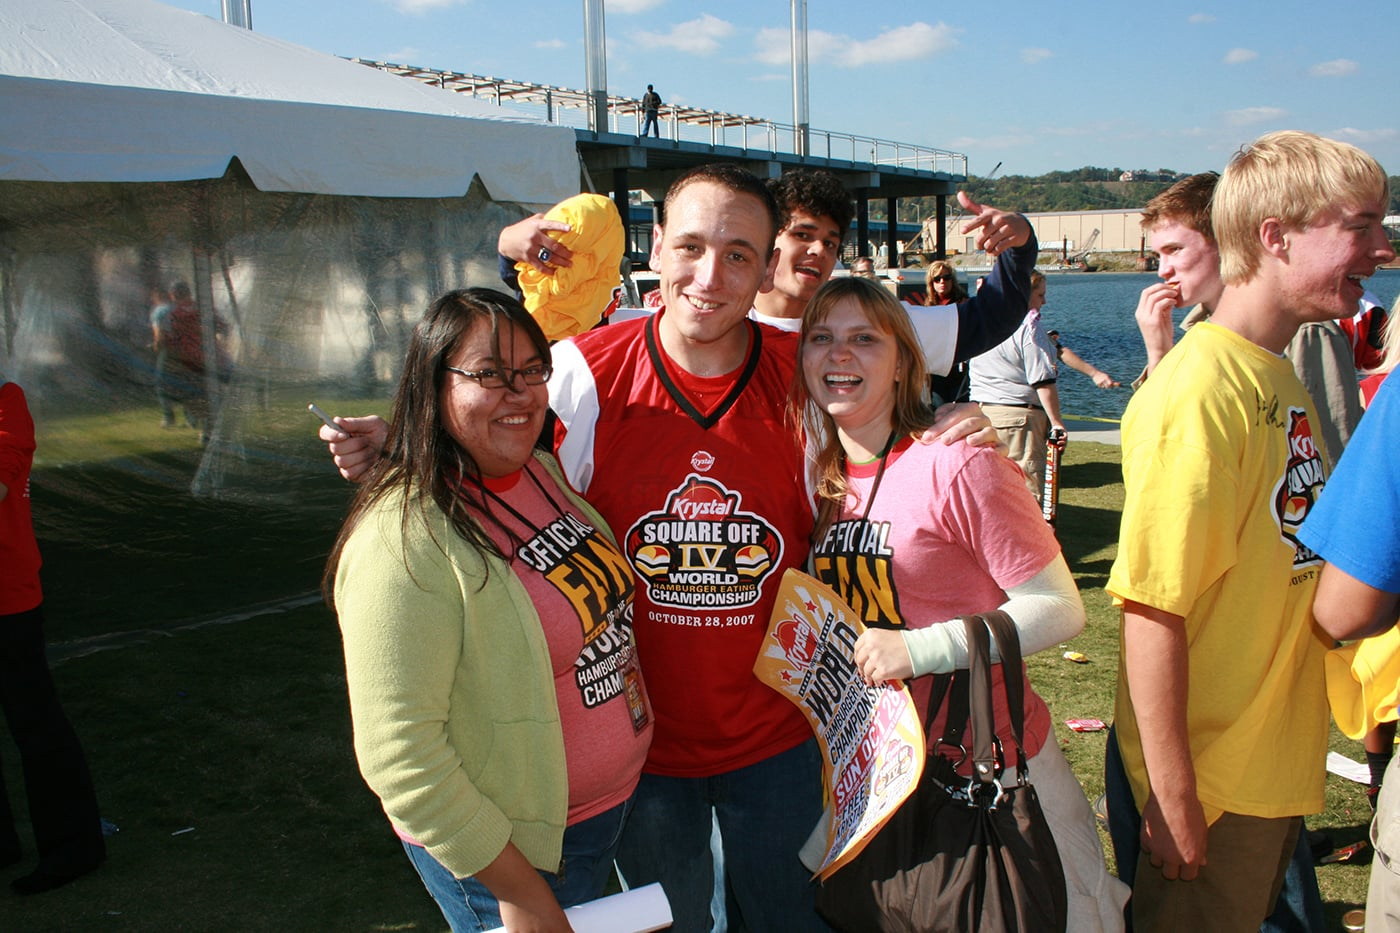 Me and Nadia meet Joey Chestnut at the Krystal Square Off IV hamburger eating contest in Chattanooga, Tennessee.